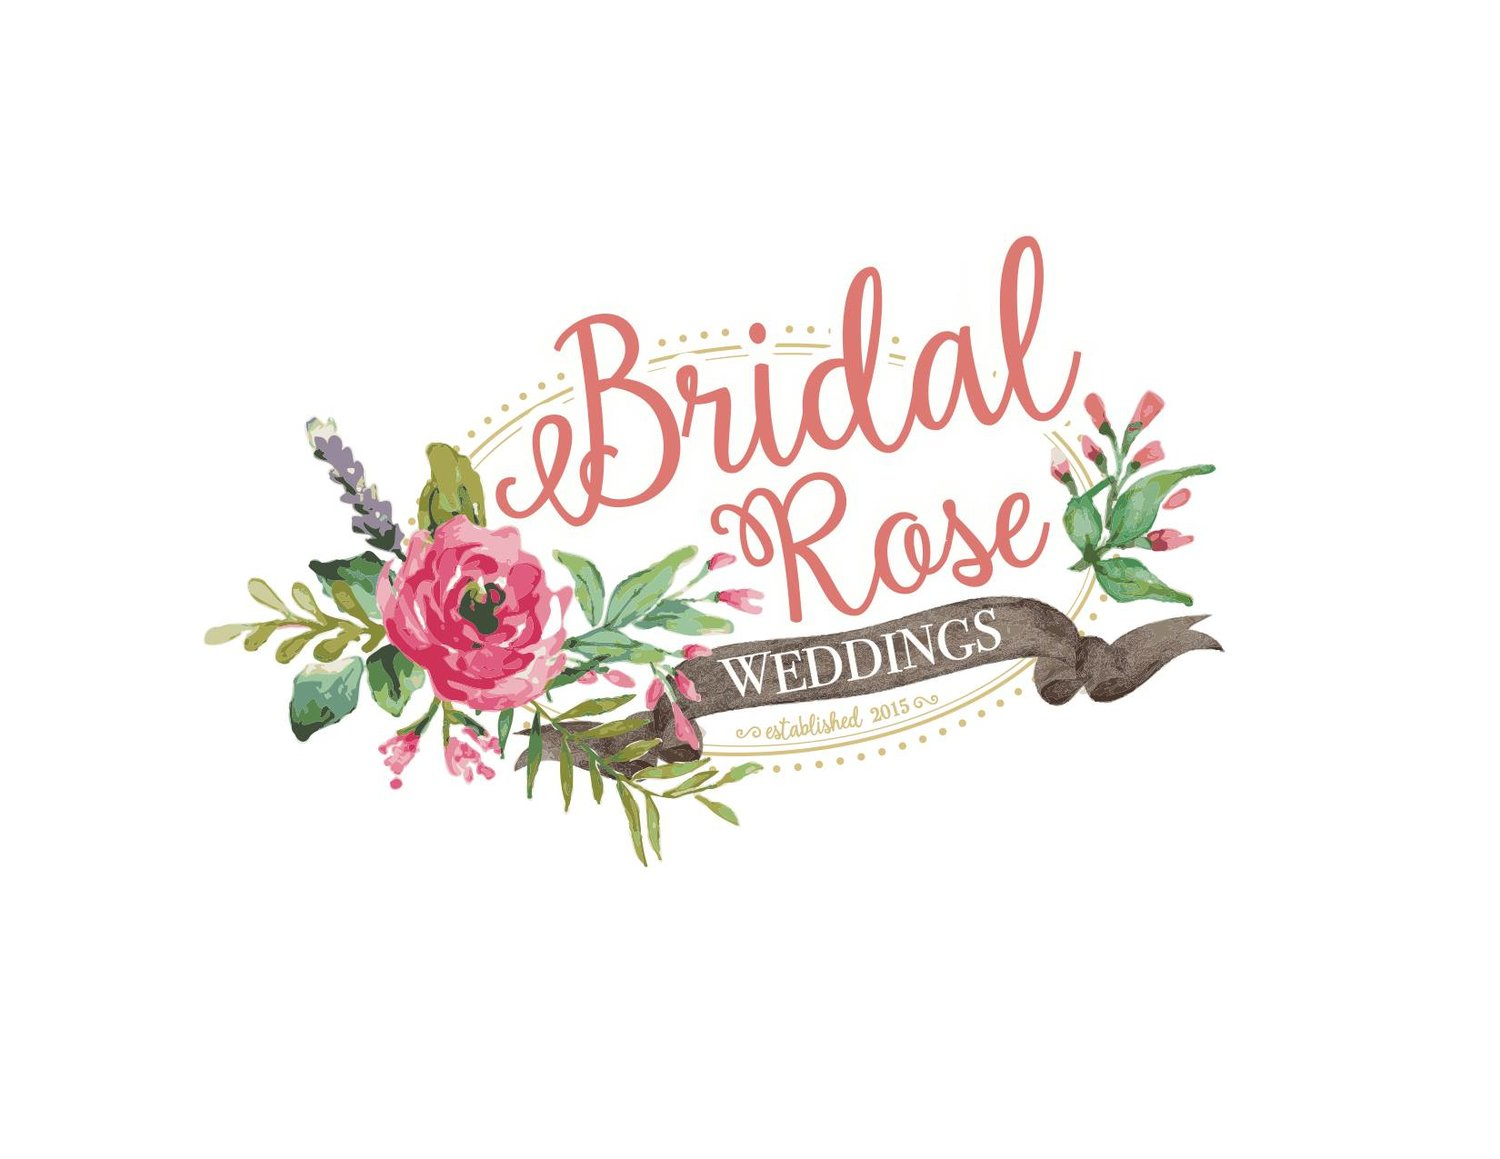 Bridal Rose Farm